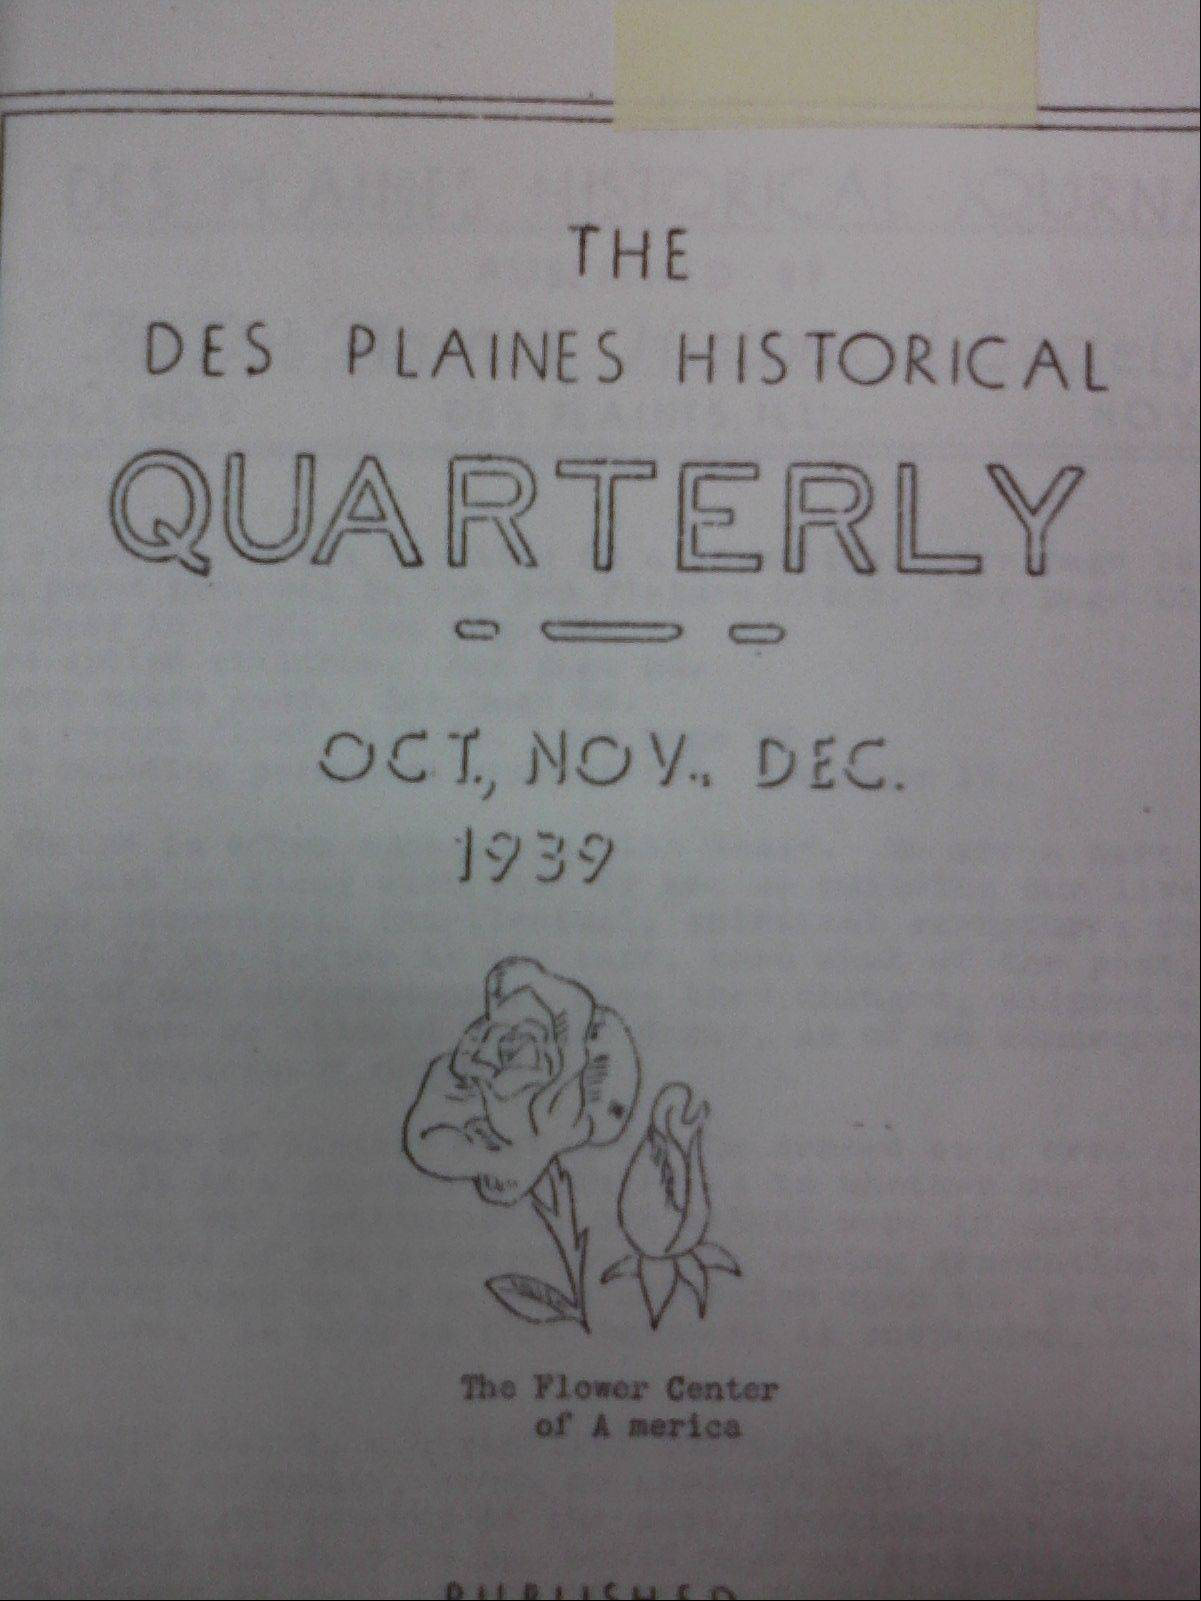 "Before Des Plaines became the ""City of Destiny,"" it was the ""City of Roses"" and used the motto in this copy of the Des Plaines Historical Society's quarterly magazine."